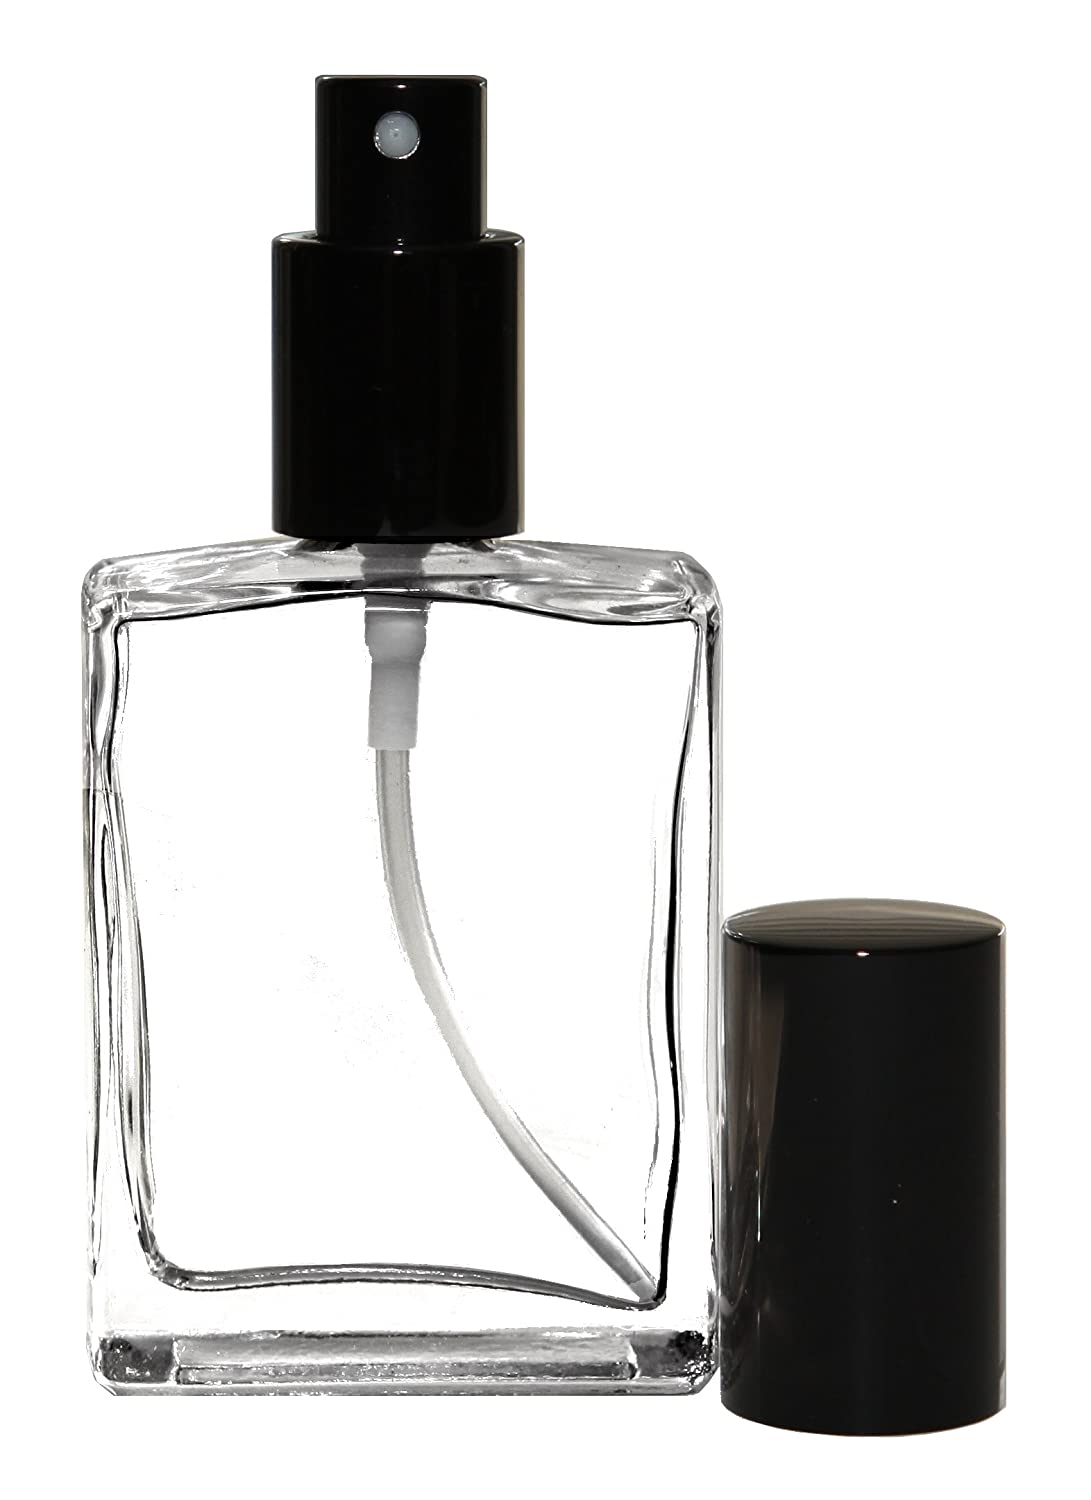 Riverrun Perfume Atomizer, Flat Glass Bottle, Black Fine Mist Sprayer 1 oz 30ml Set of 3